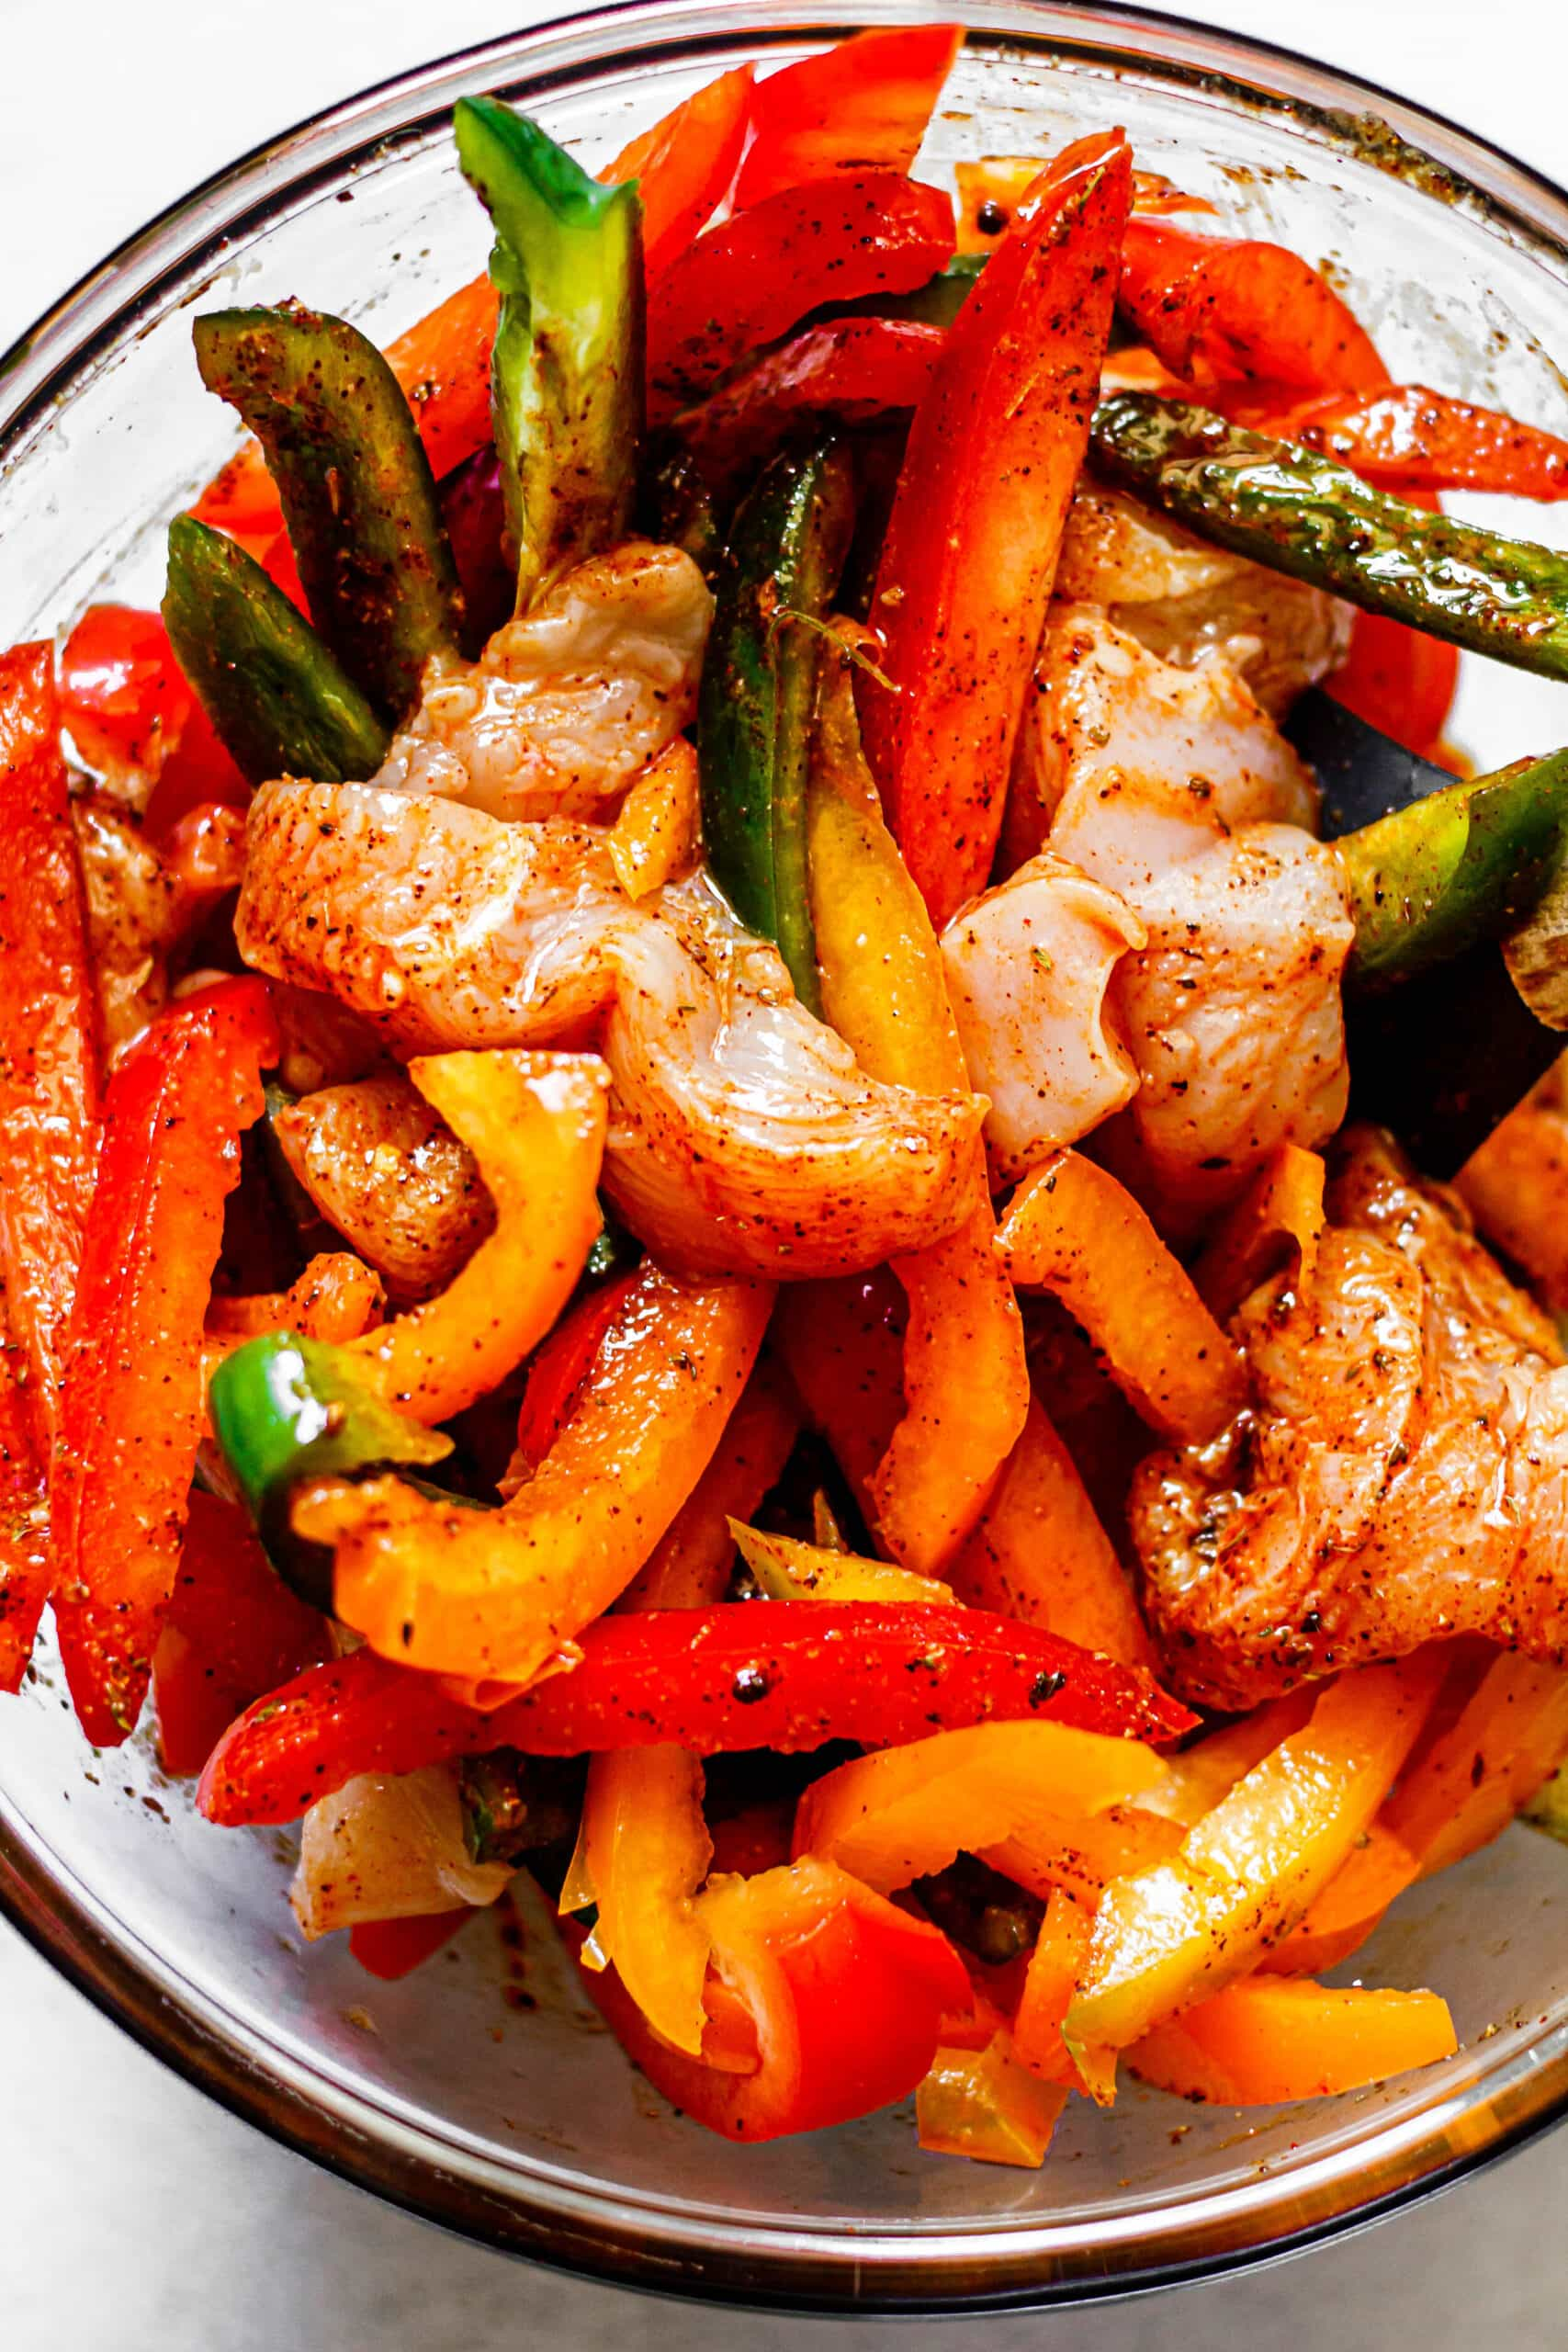 marinade, chicken, and peppers tossed together in glass mixing bowl